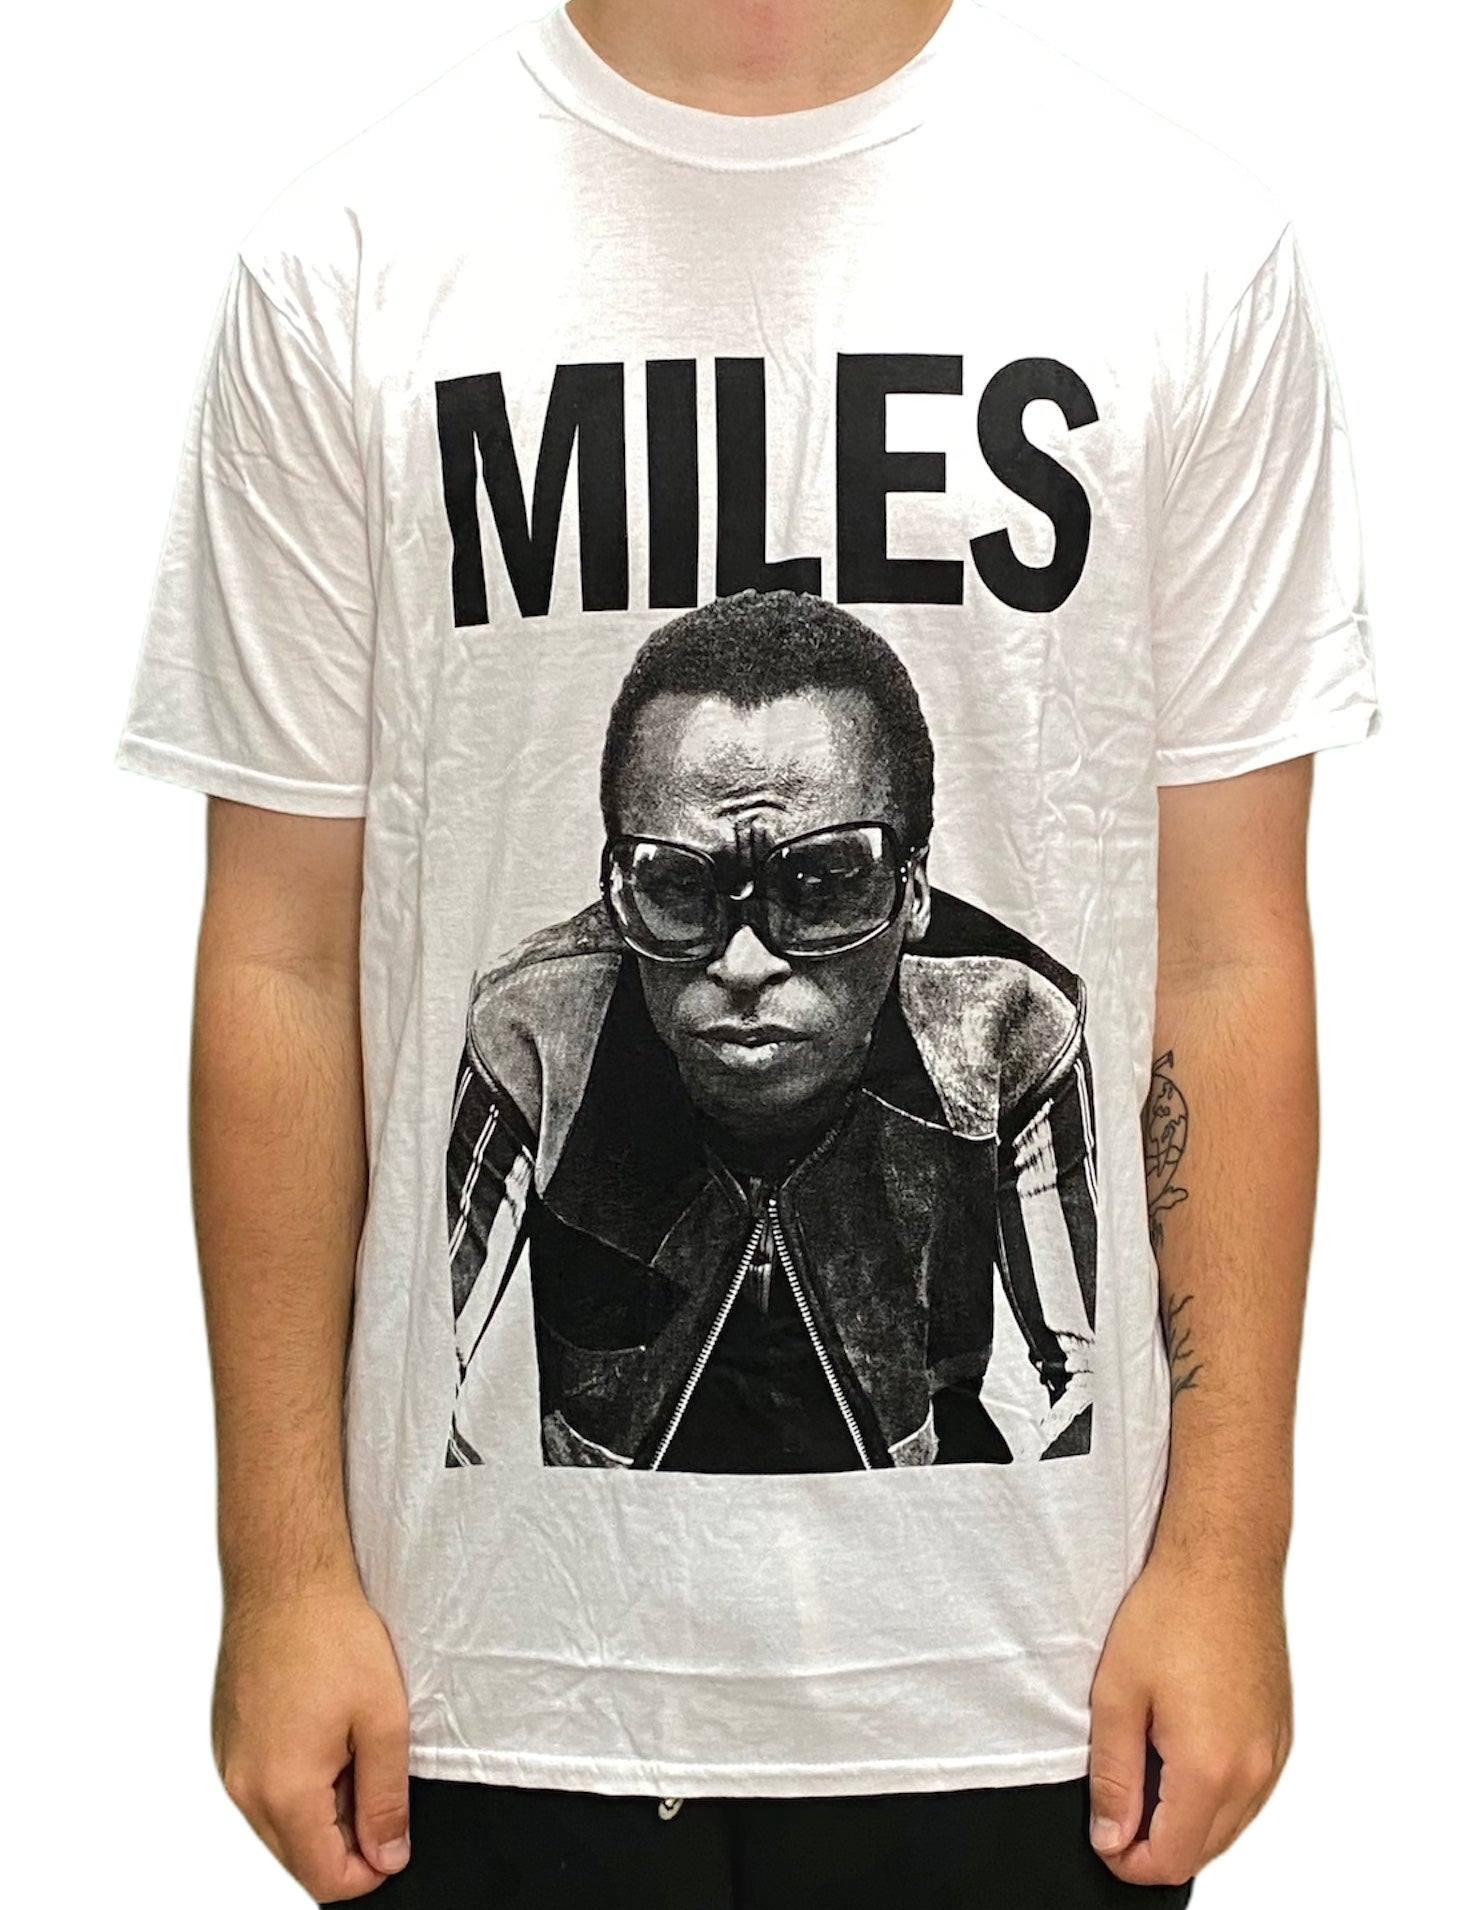 Miles Davis 'Miles' Unisex Official T Shirt Brand New Various Sizes Prince